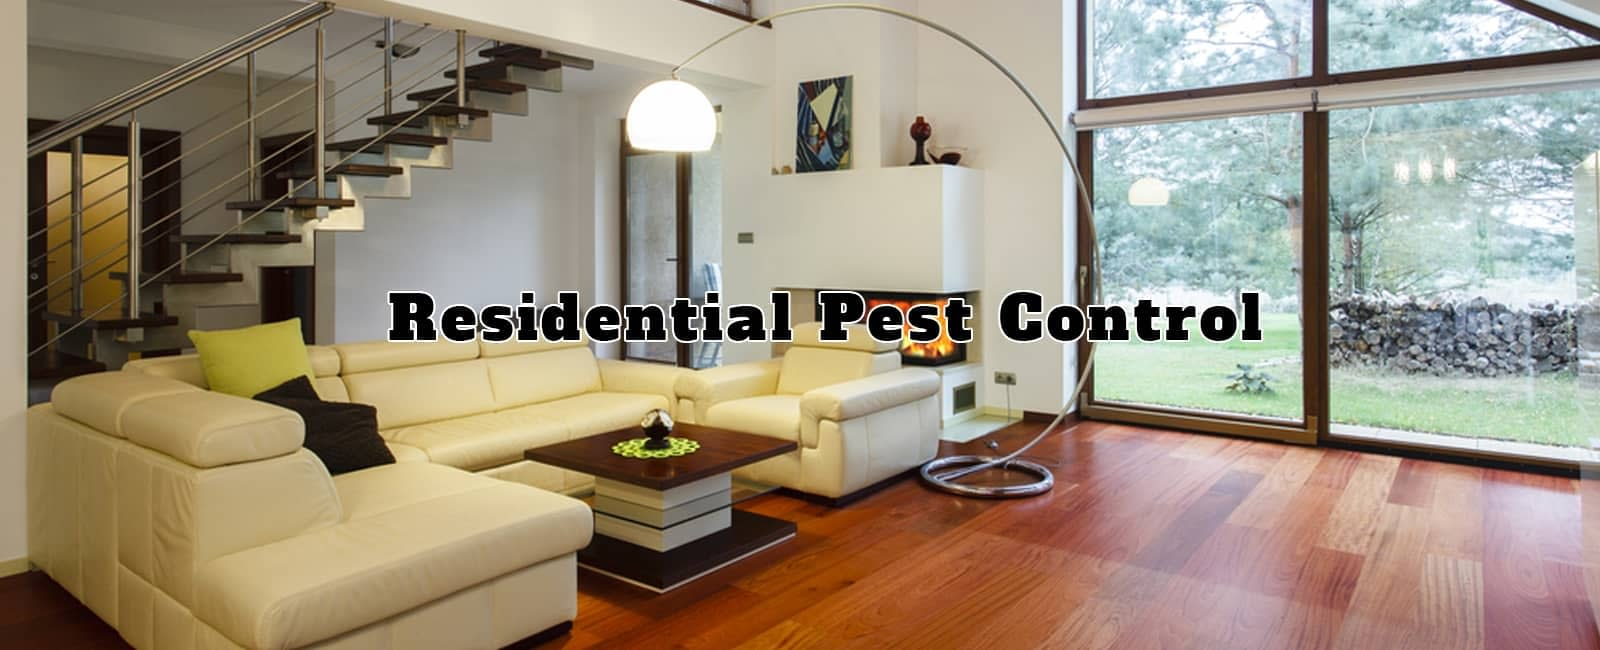 residential-pest-control